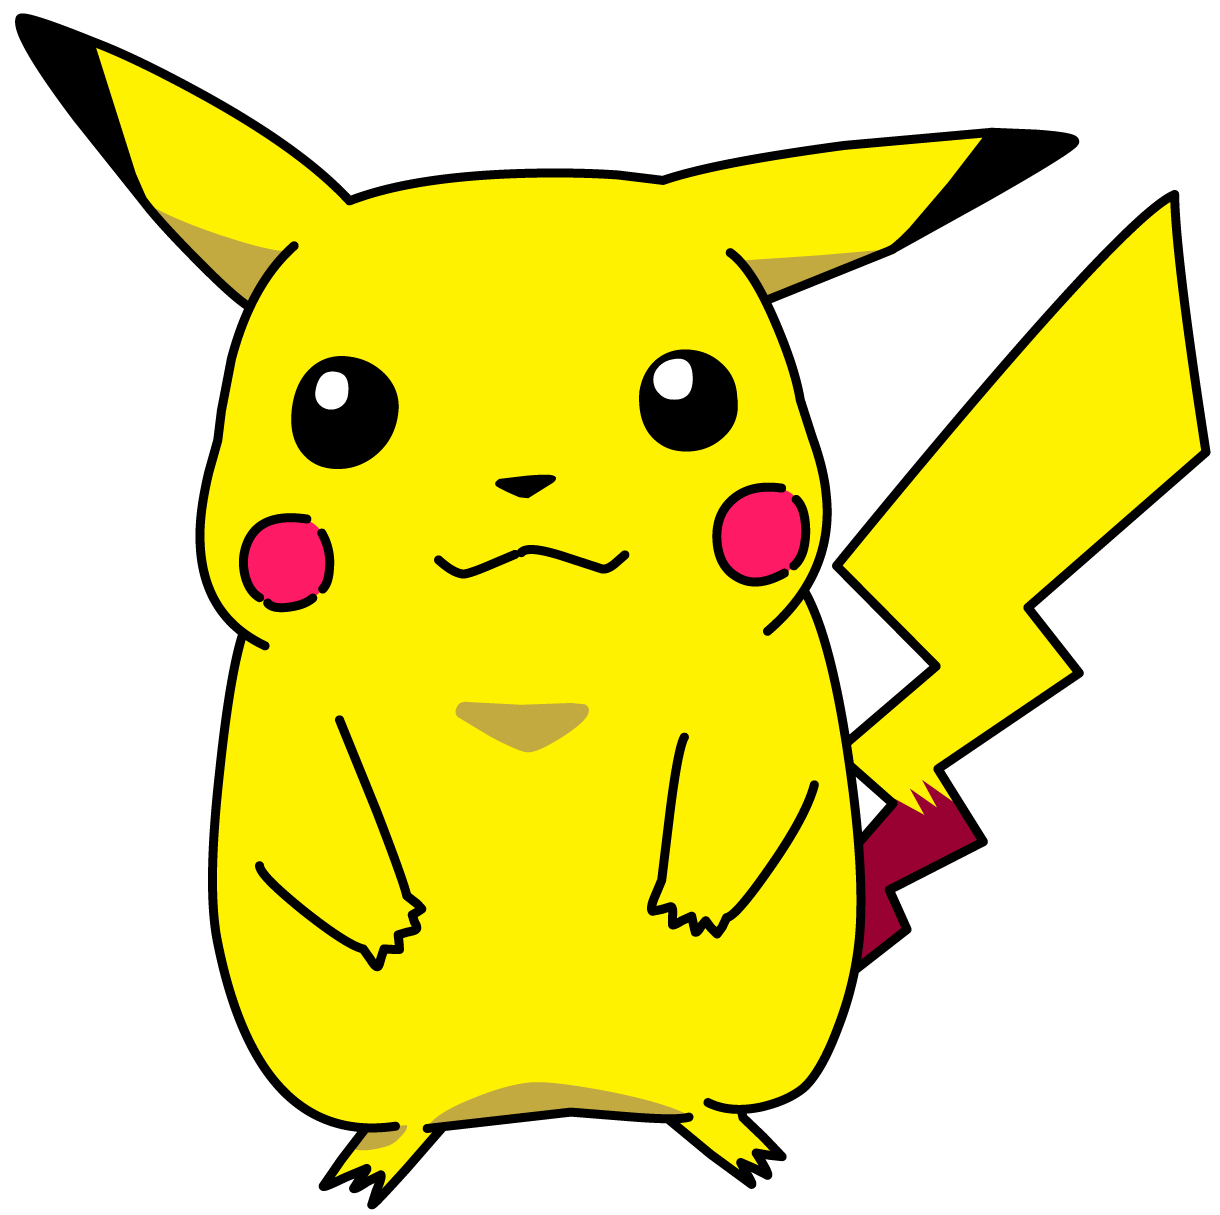 Free Pikachu, Download Free Clip Art, Free Clip Art on.